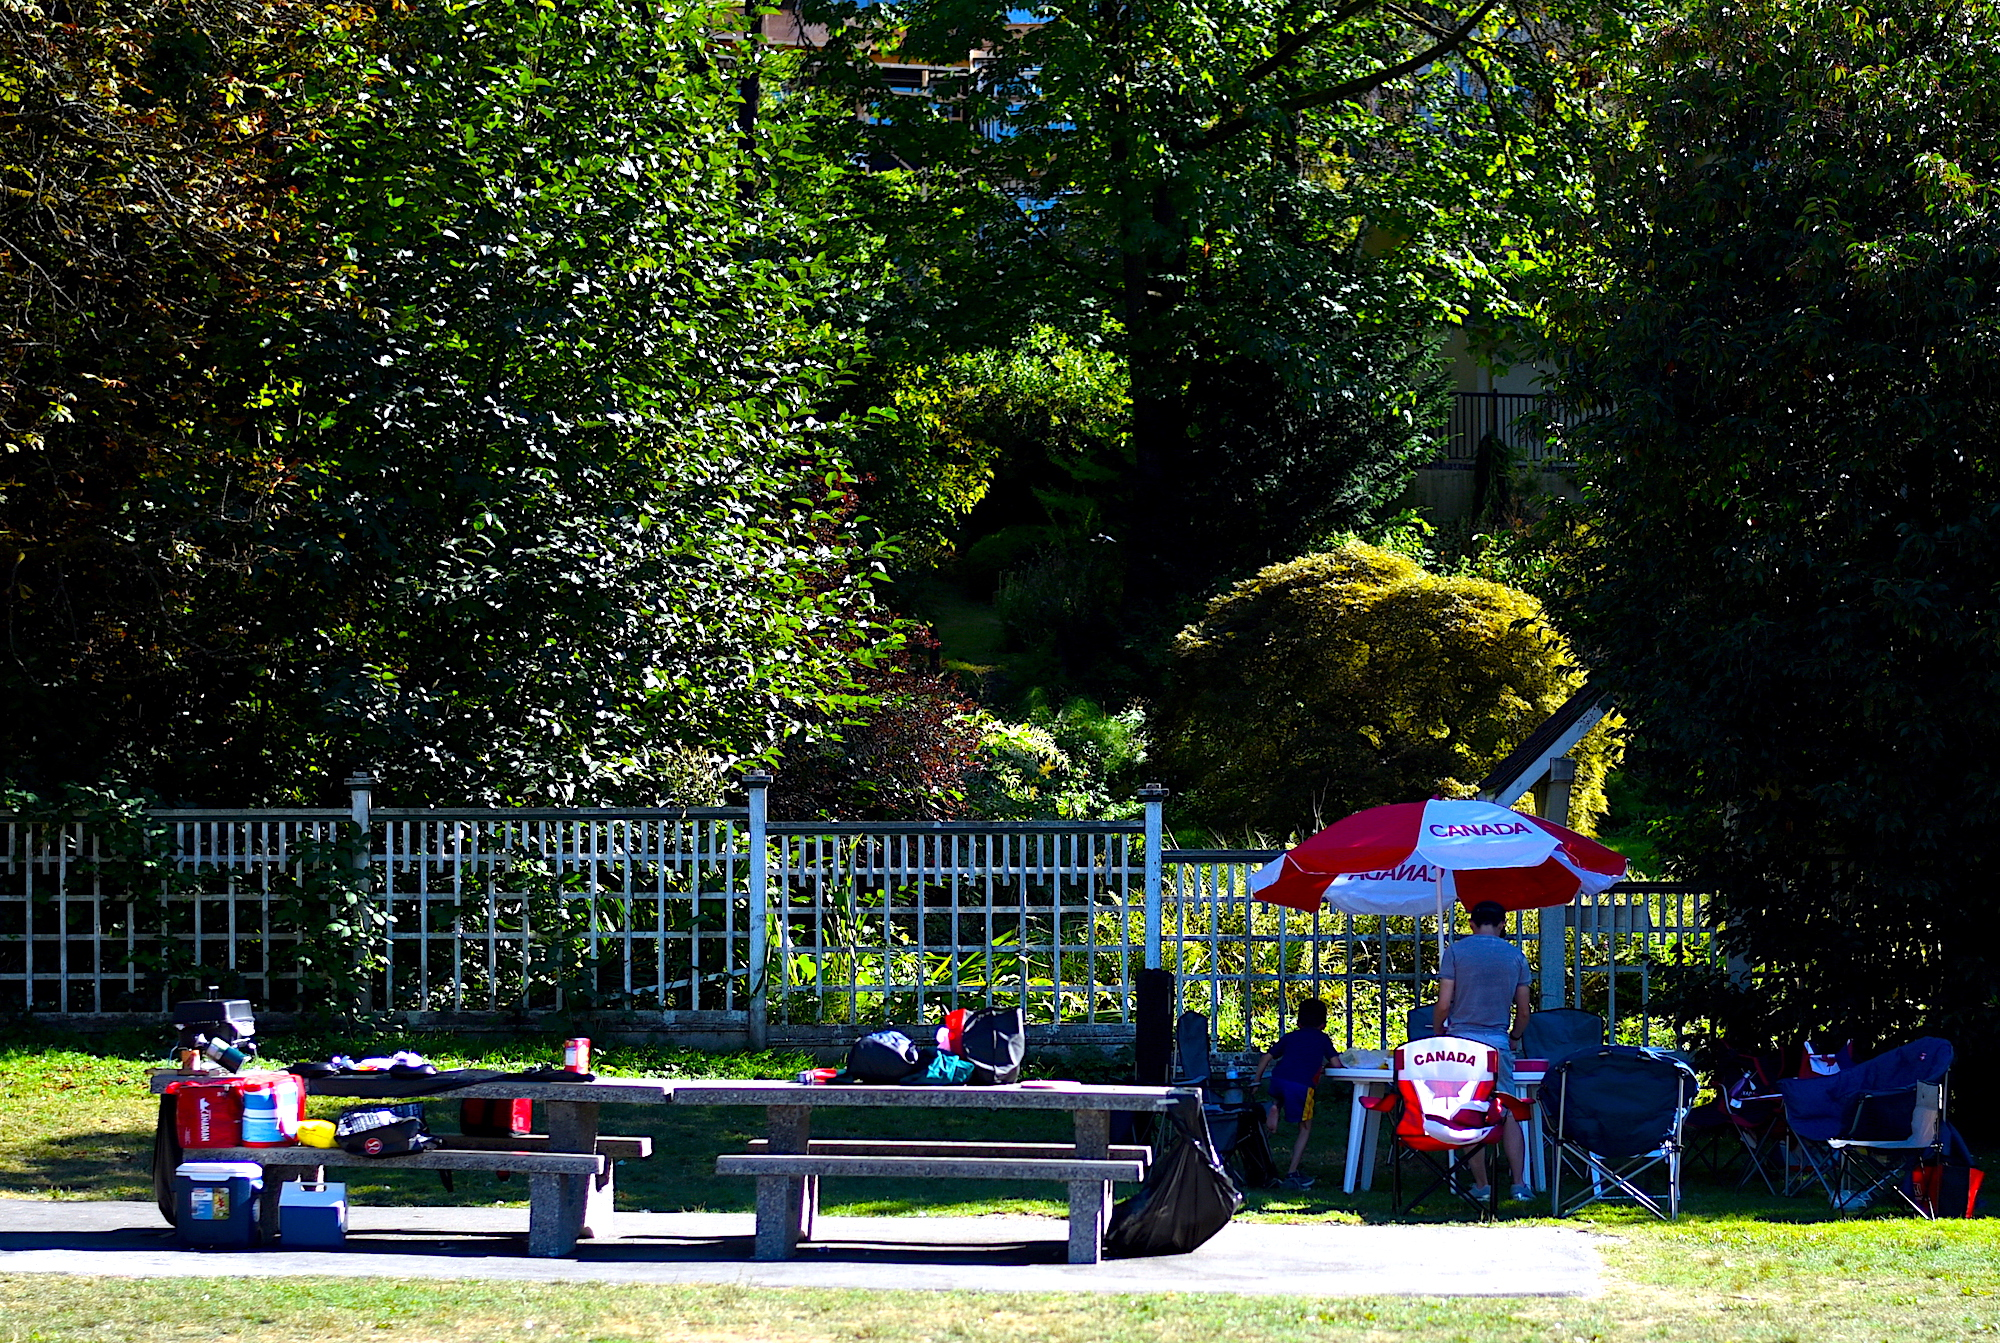 Picnic benches for family and friends to gather for a summer barbecue.